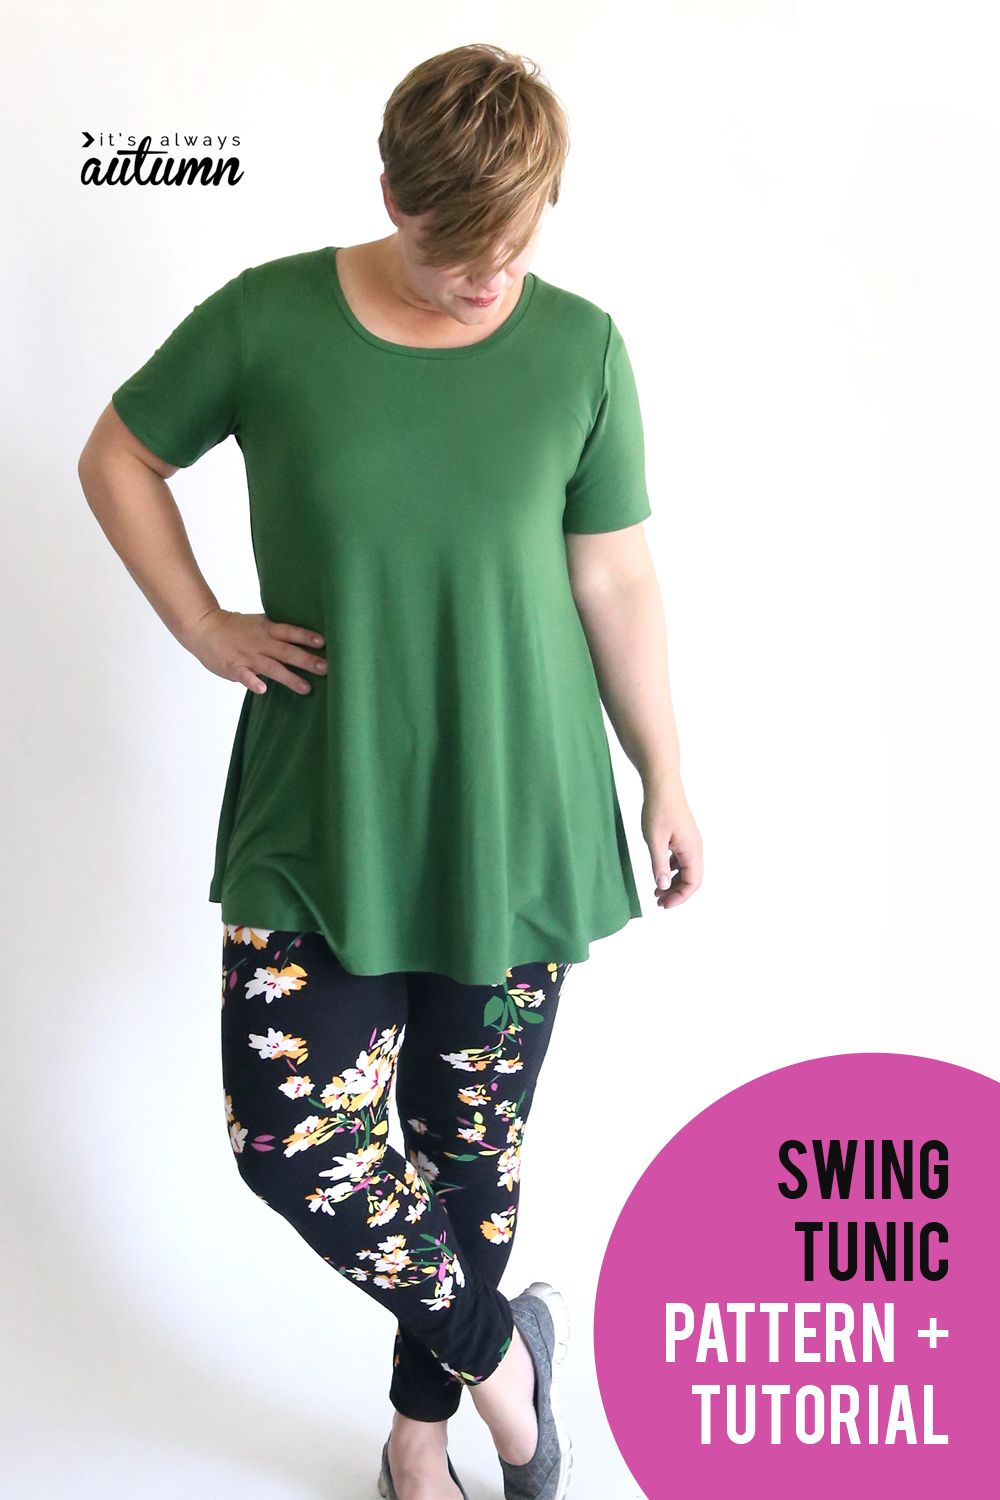 e7691e99 Sew up a cute swing tunic to wear with your favorite leggings this fall! Easy  sewing pattern and tutorial. #itsalwaysautumn #swingtunic #tunicpattern ...